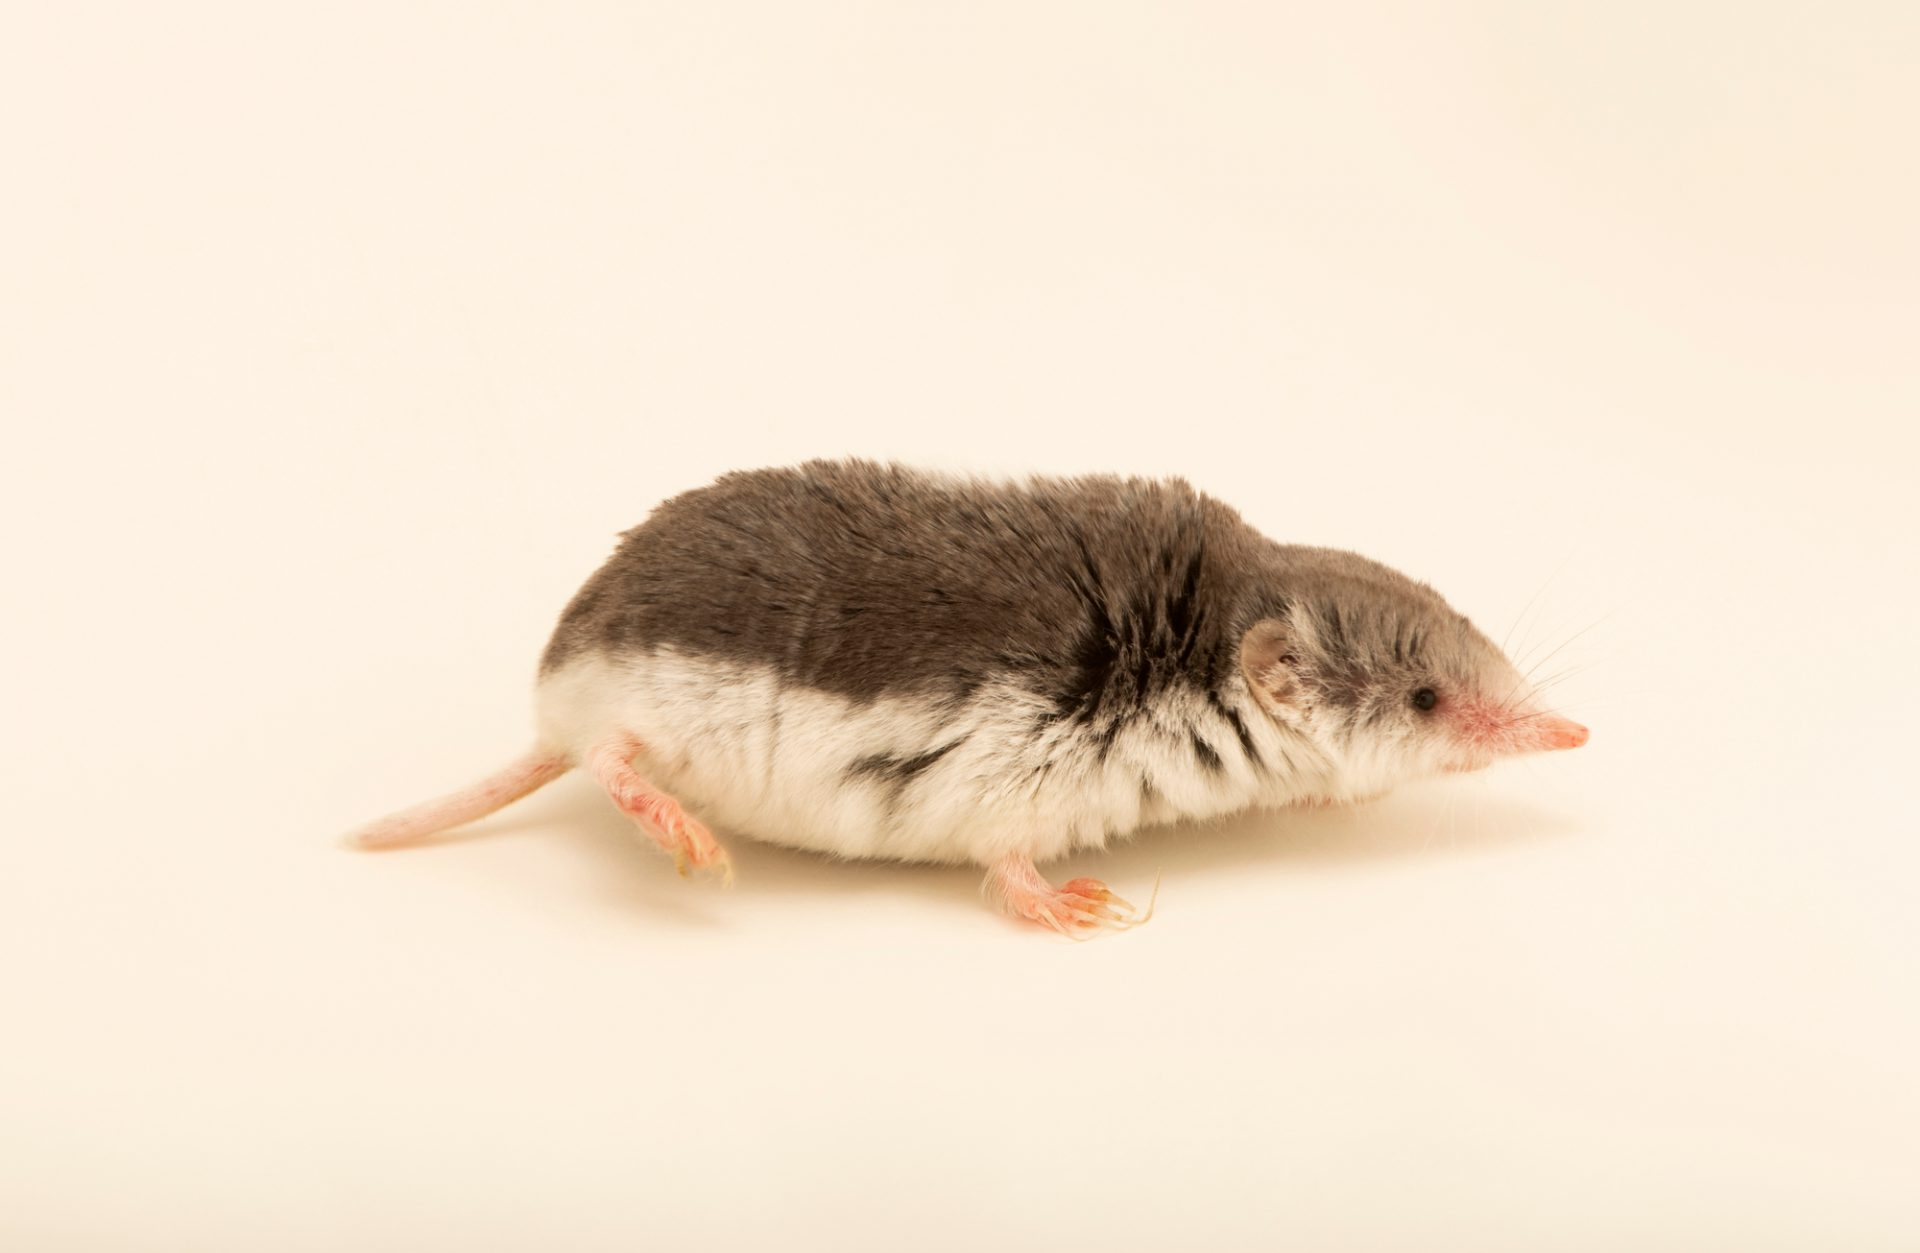 Photo: Piebald shrew (Diplomesodon pulchellum) at the Moscow Zoo.